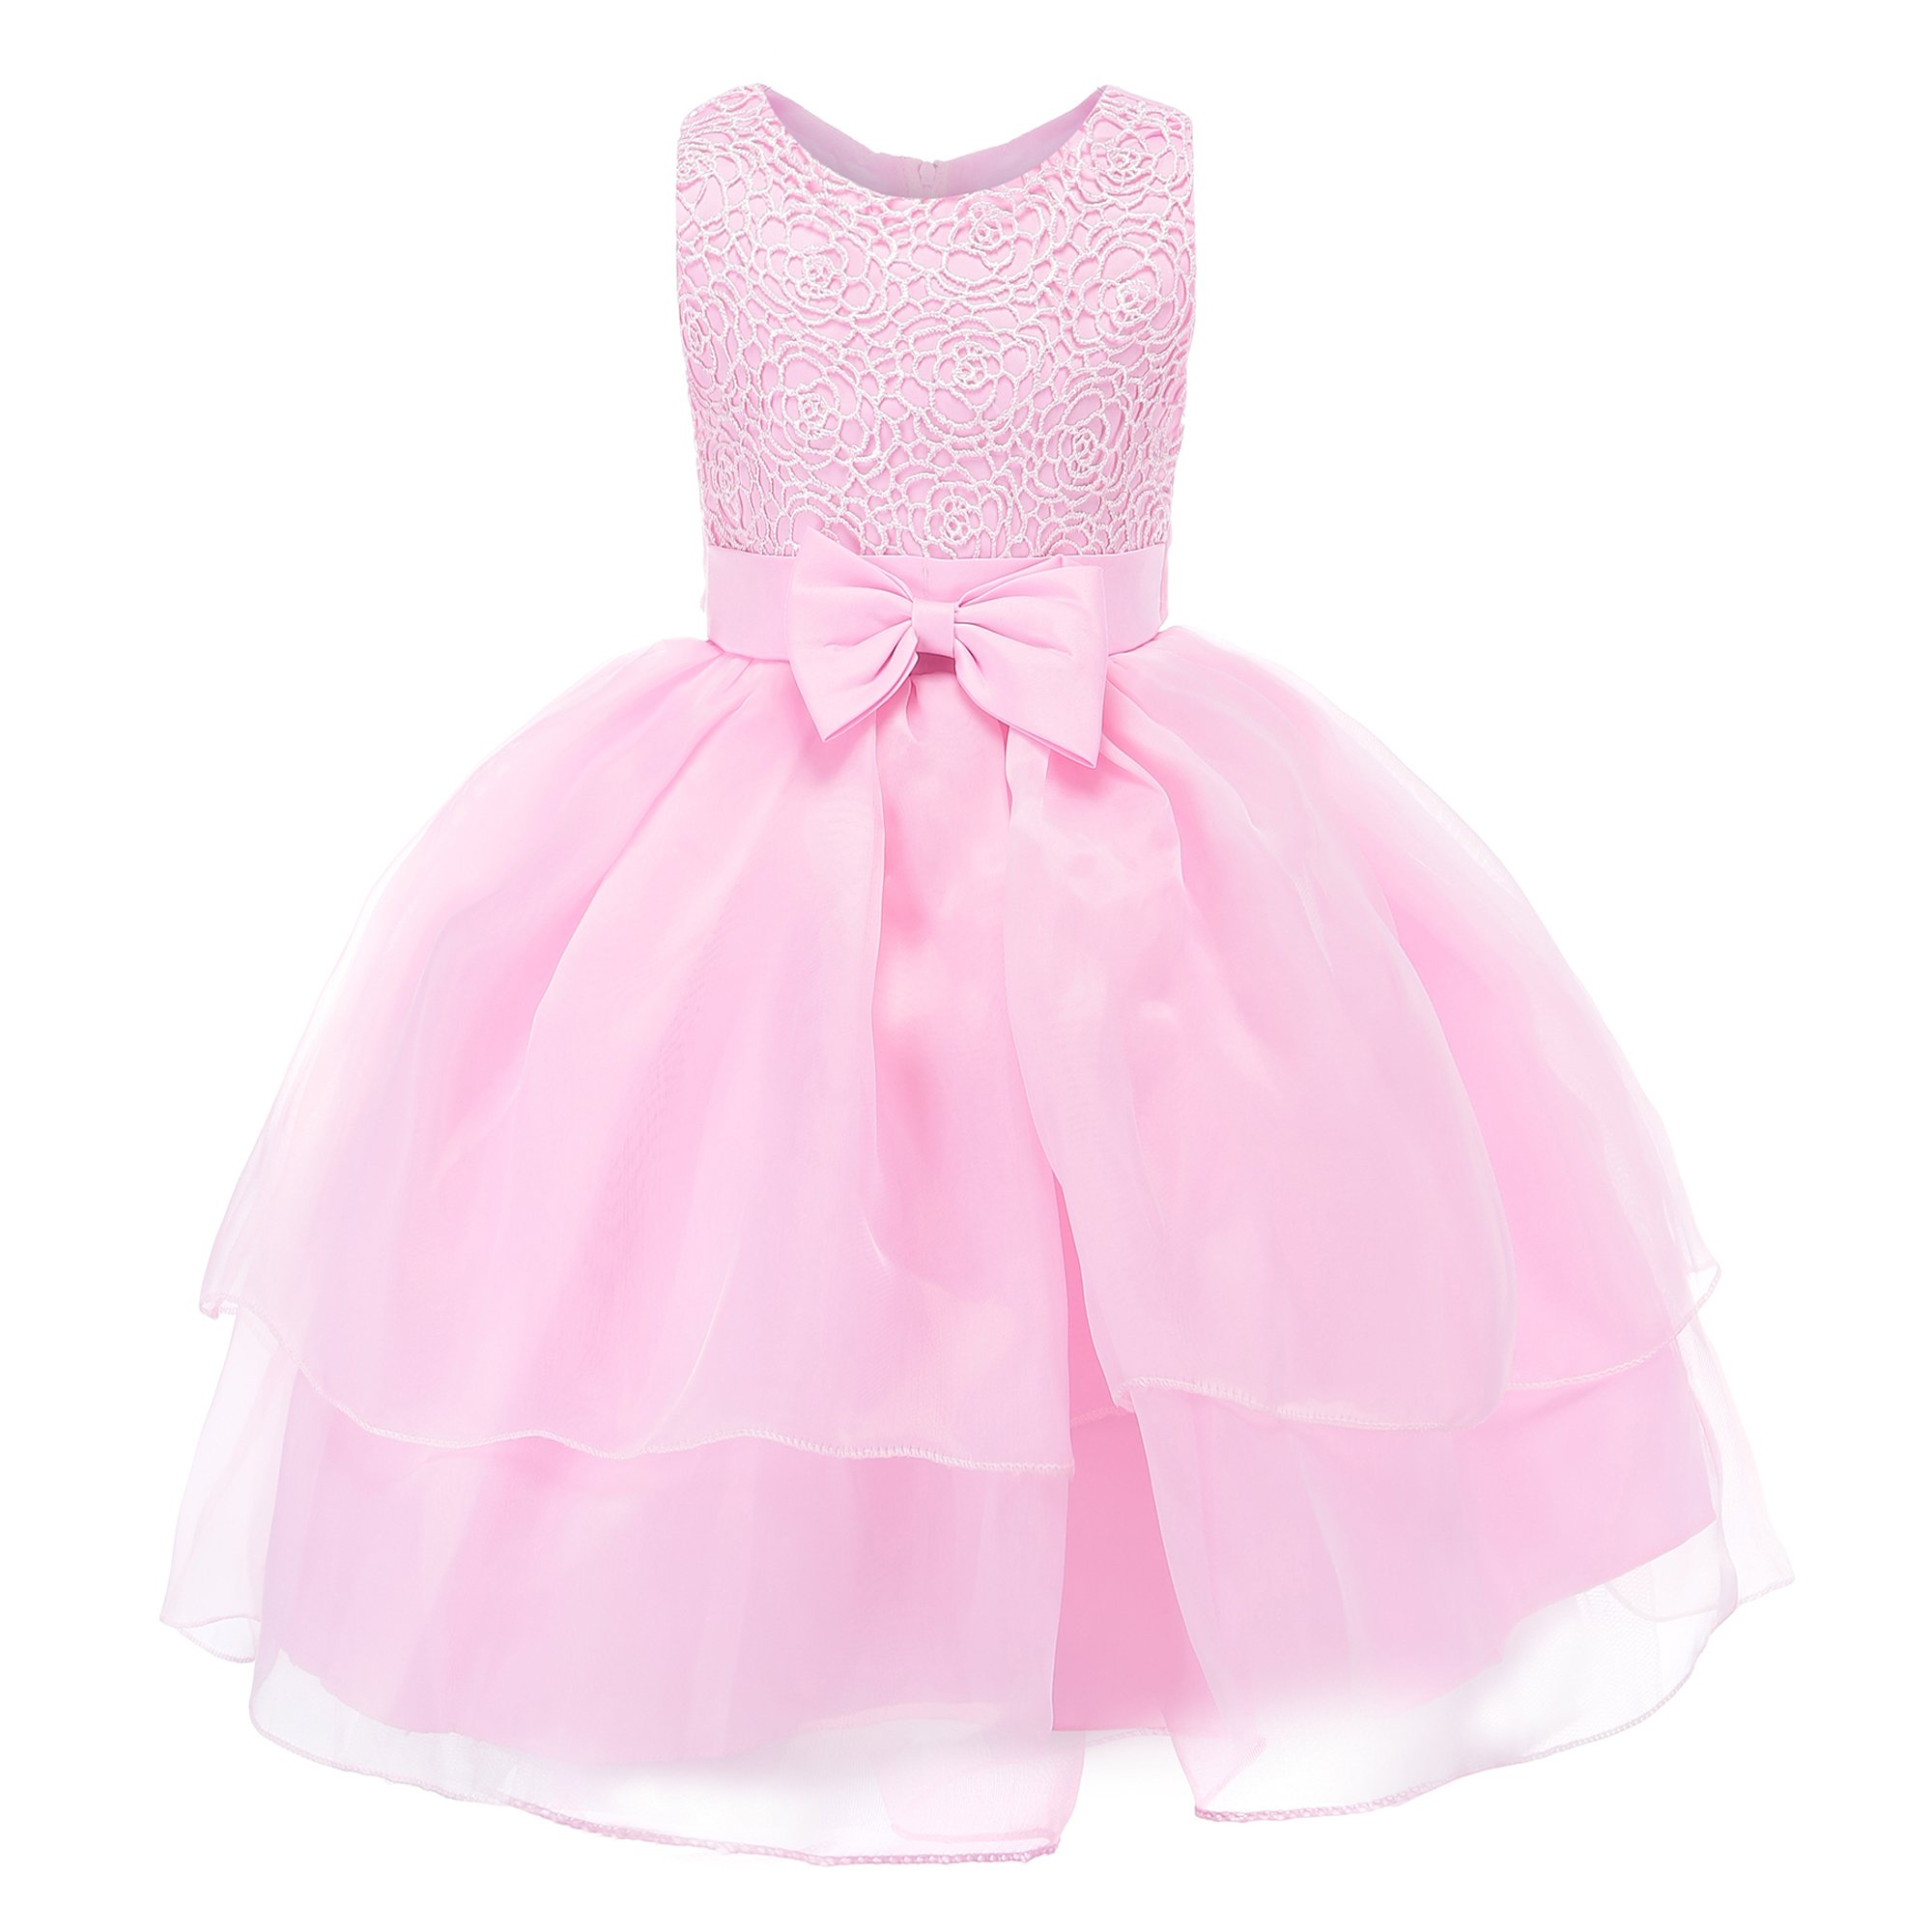 Fiream Flower Girls Dresses Tulle Sleeveless Princess Pageant Wedding Party Dresses(pink,3T/3-4YRS)